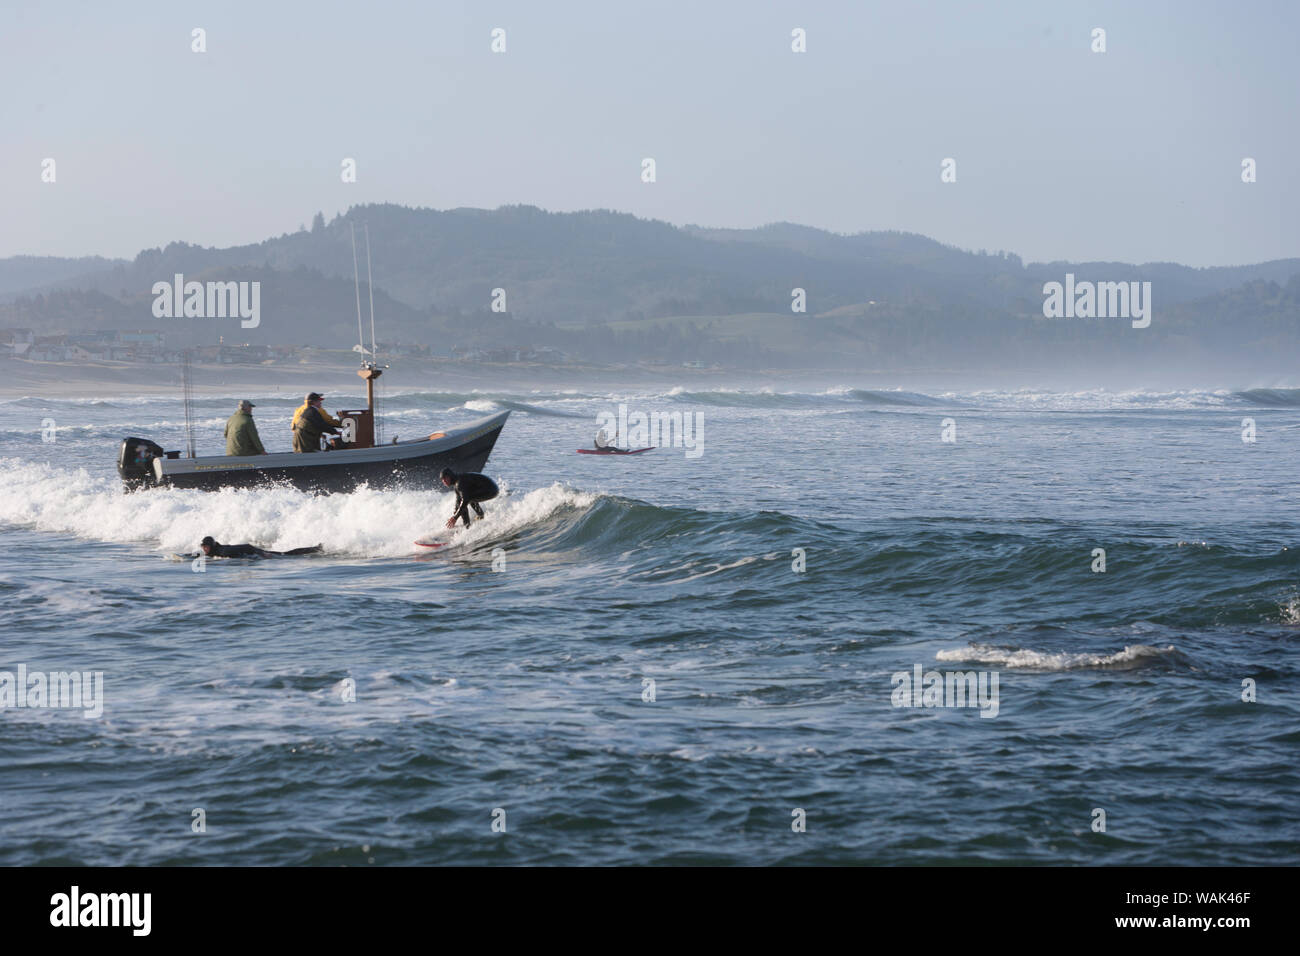 Dory Boat Stock Photos & Dory Boat Stock Images - Alamy